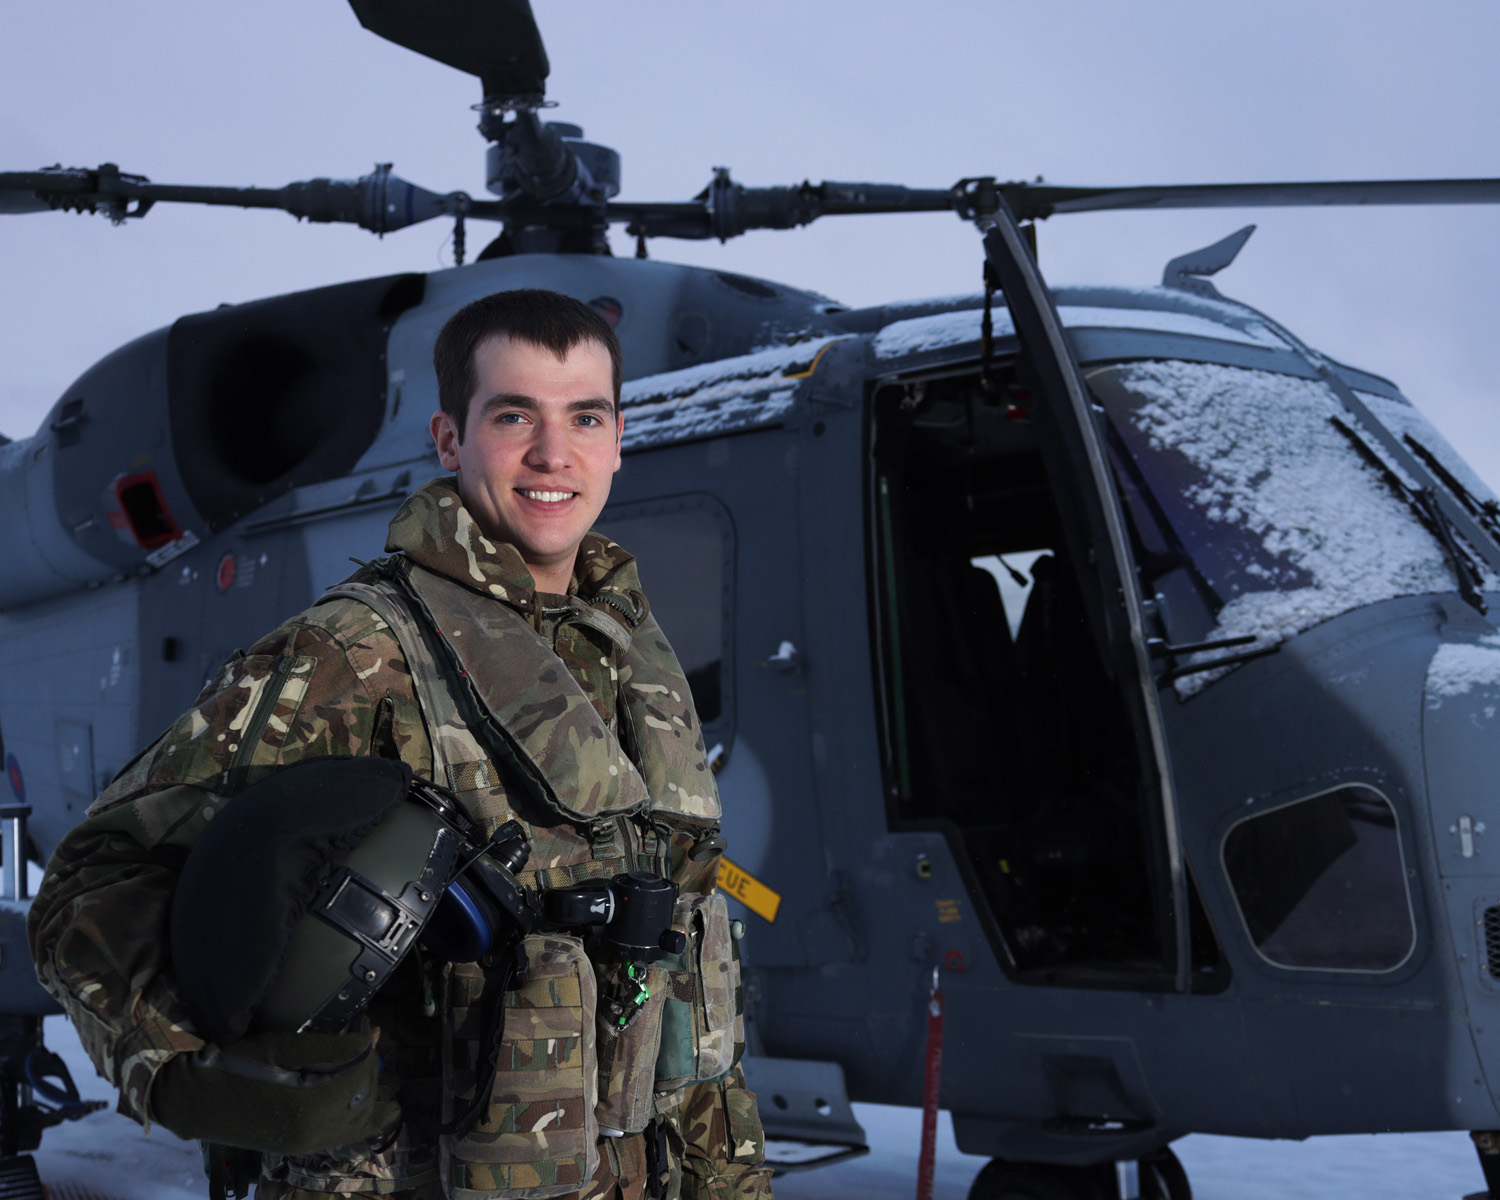 Pilot Lieutenant Mark Hanson, of 847 NAS, pictured by his Wildcat helicopter